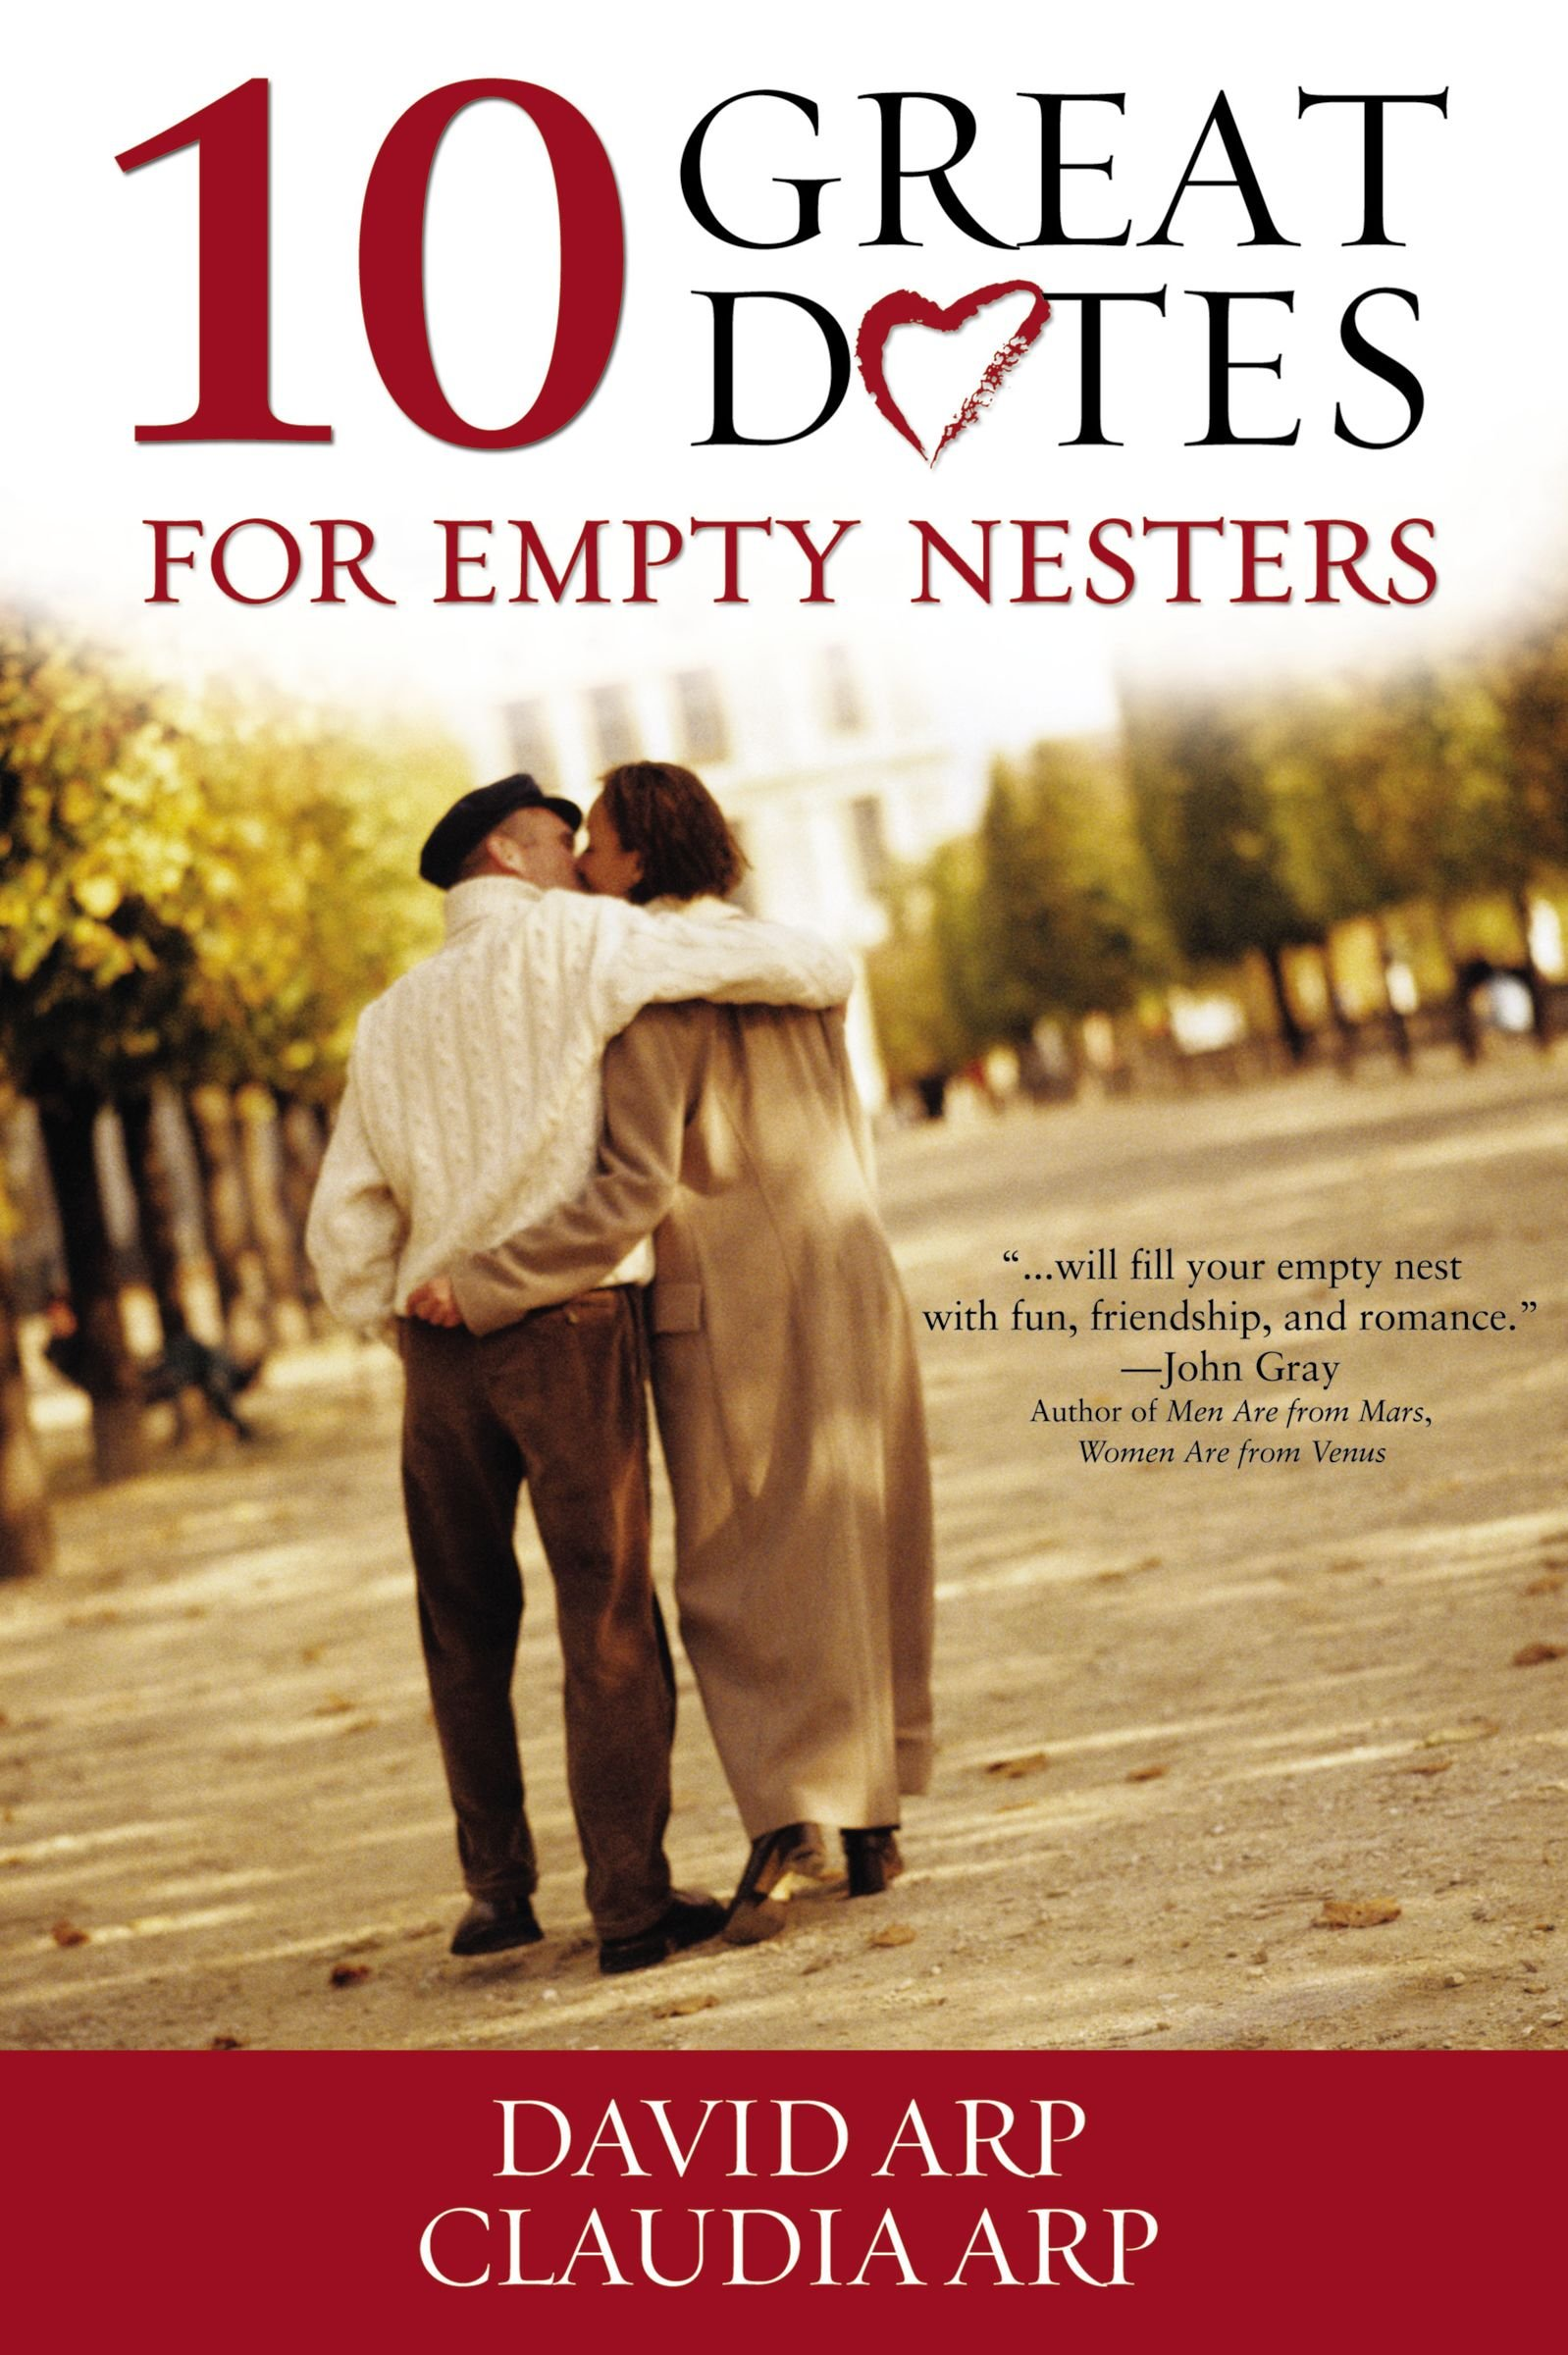 10 great dates for empty nesters david and claudia arp 10 great dates for empty nesters david and claudia arp 0025986256562 amazon books fandeluxe Ebook collections